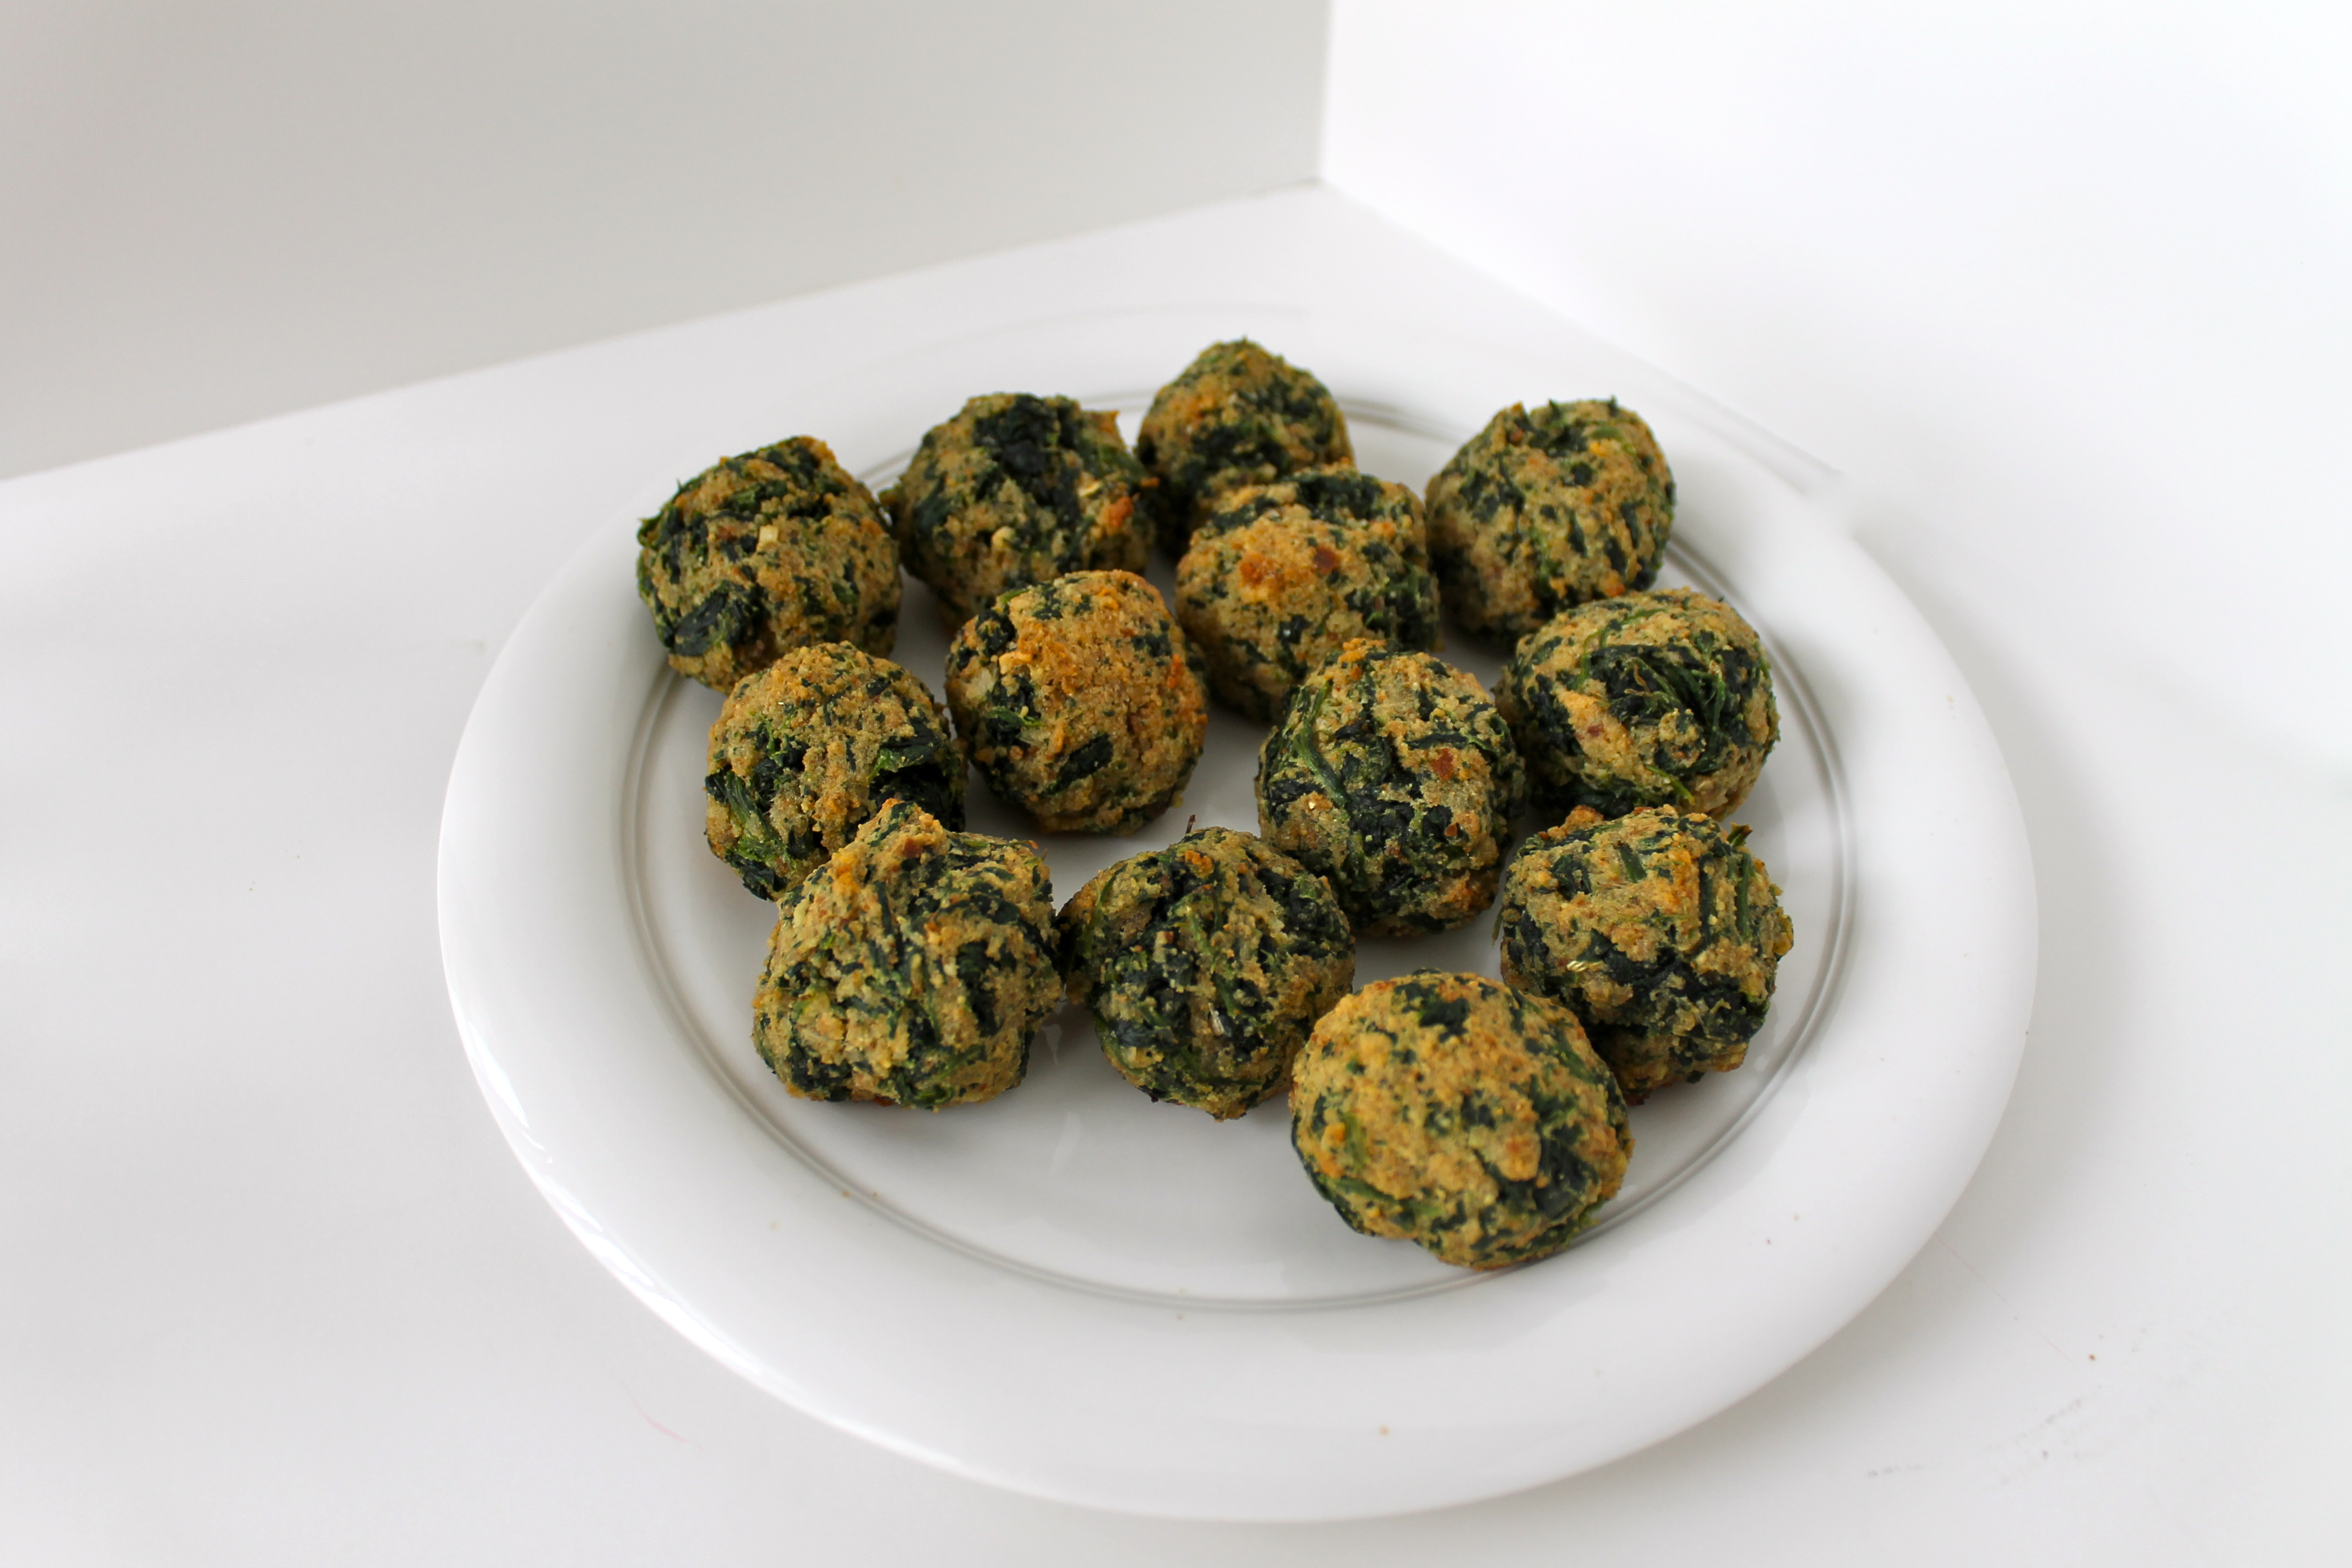 IMG 7452 - Spinach Balls